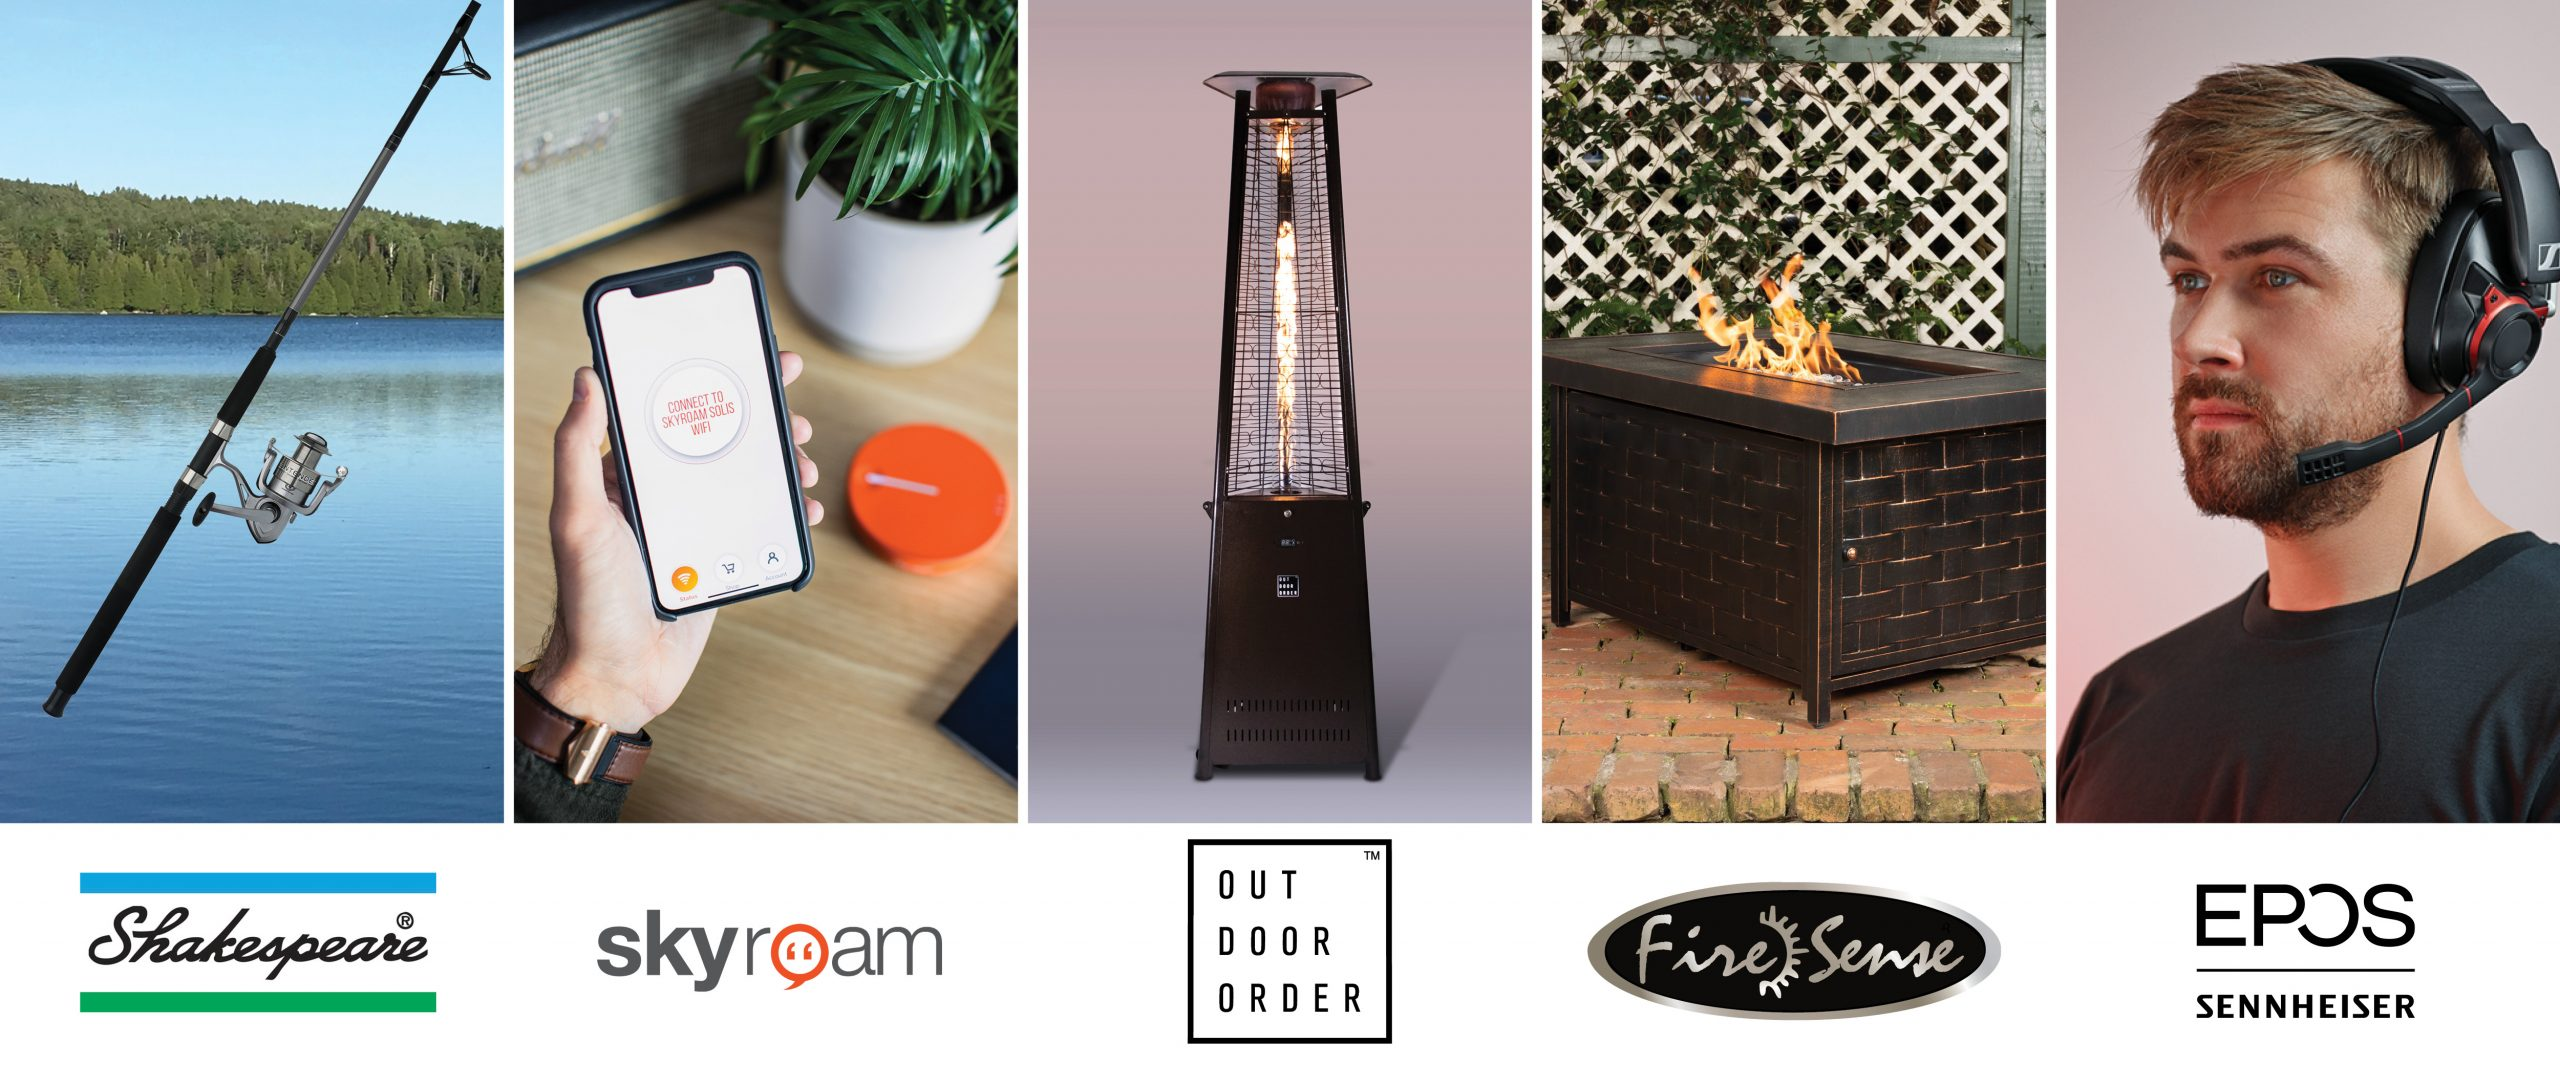 Shakespeare-Skyroam-Outdoor Order-Firesense-EPOS